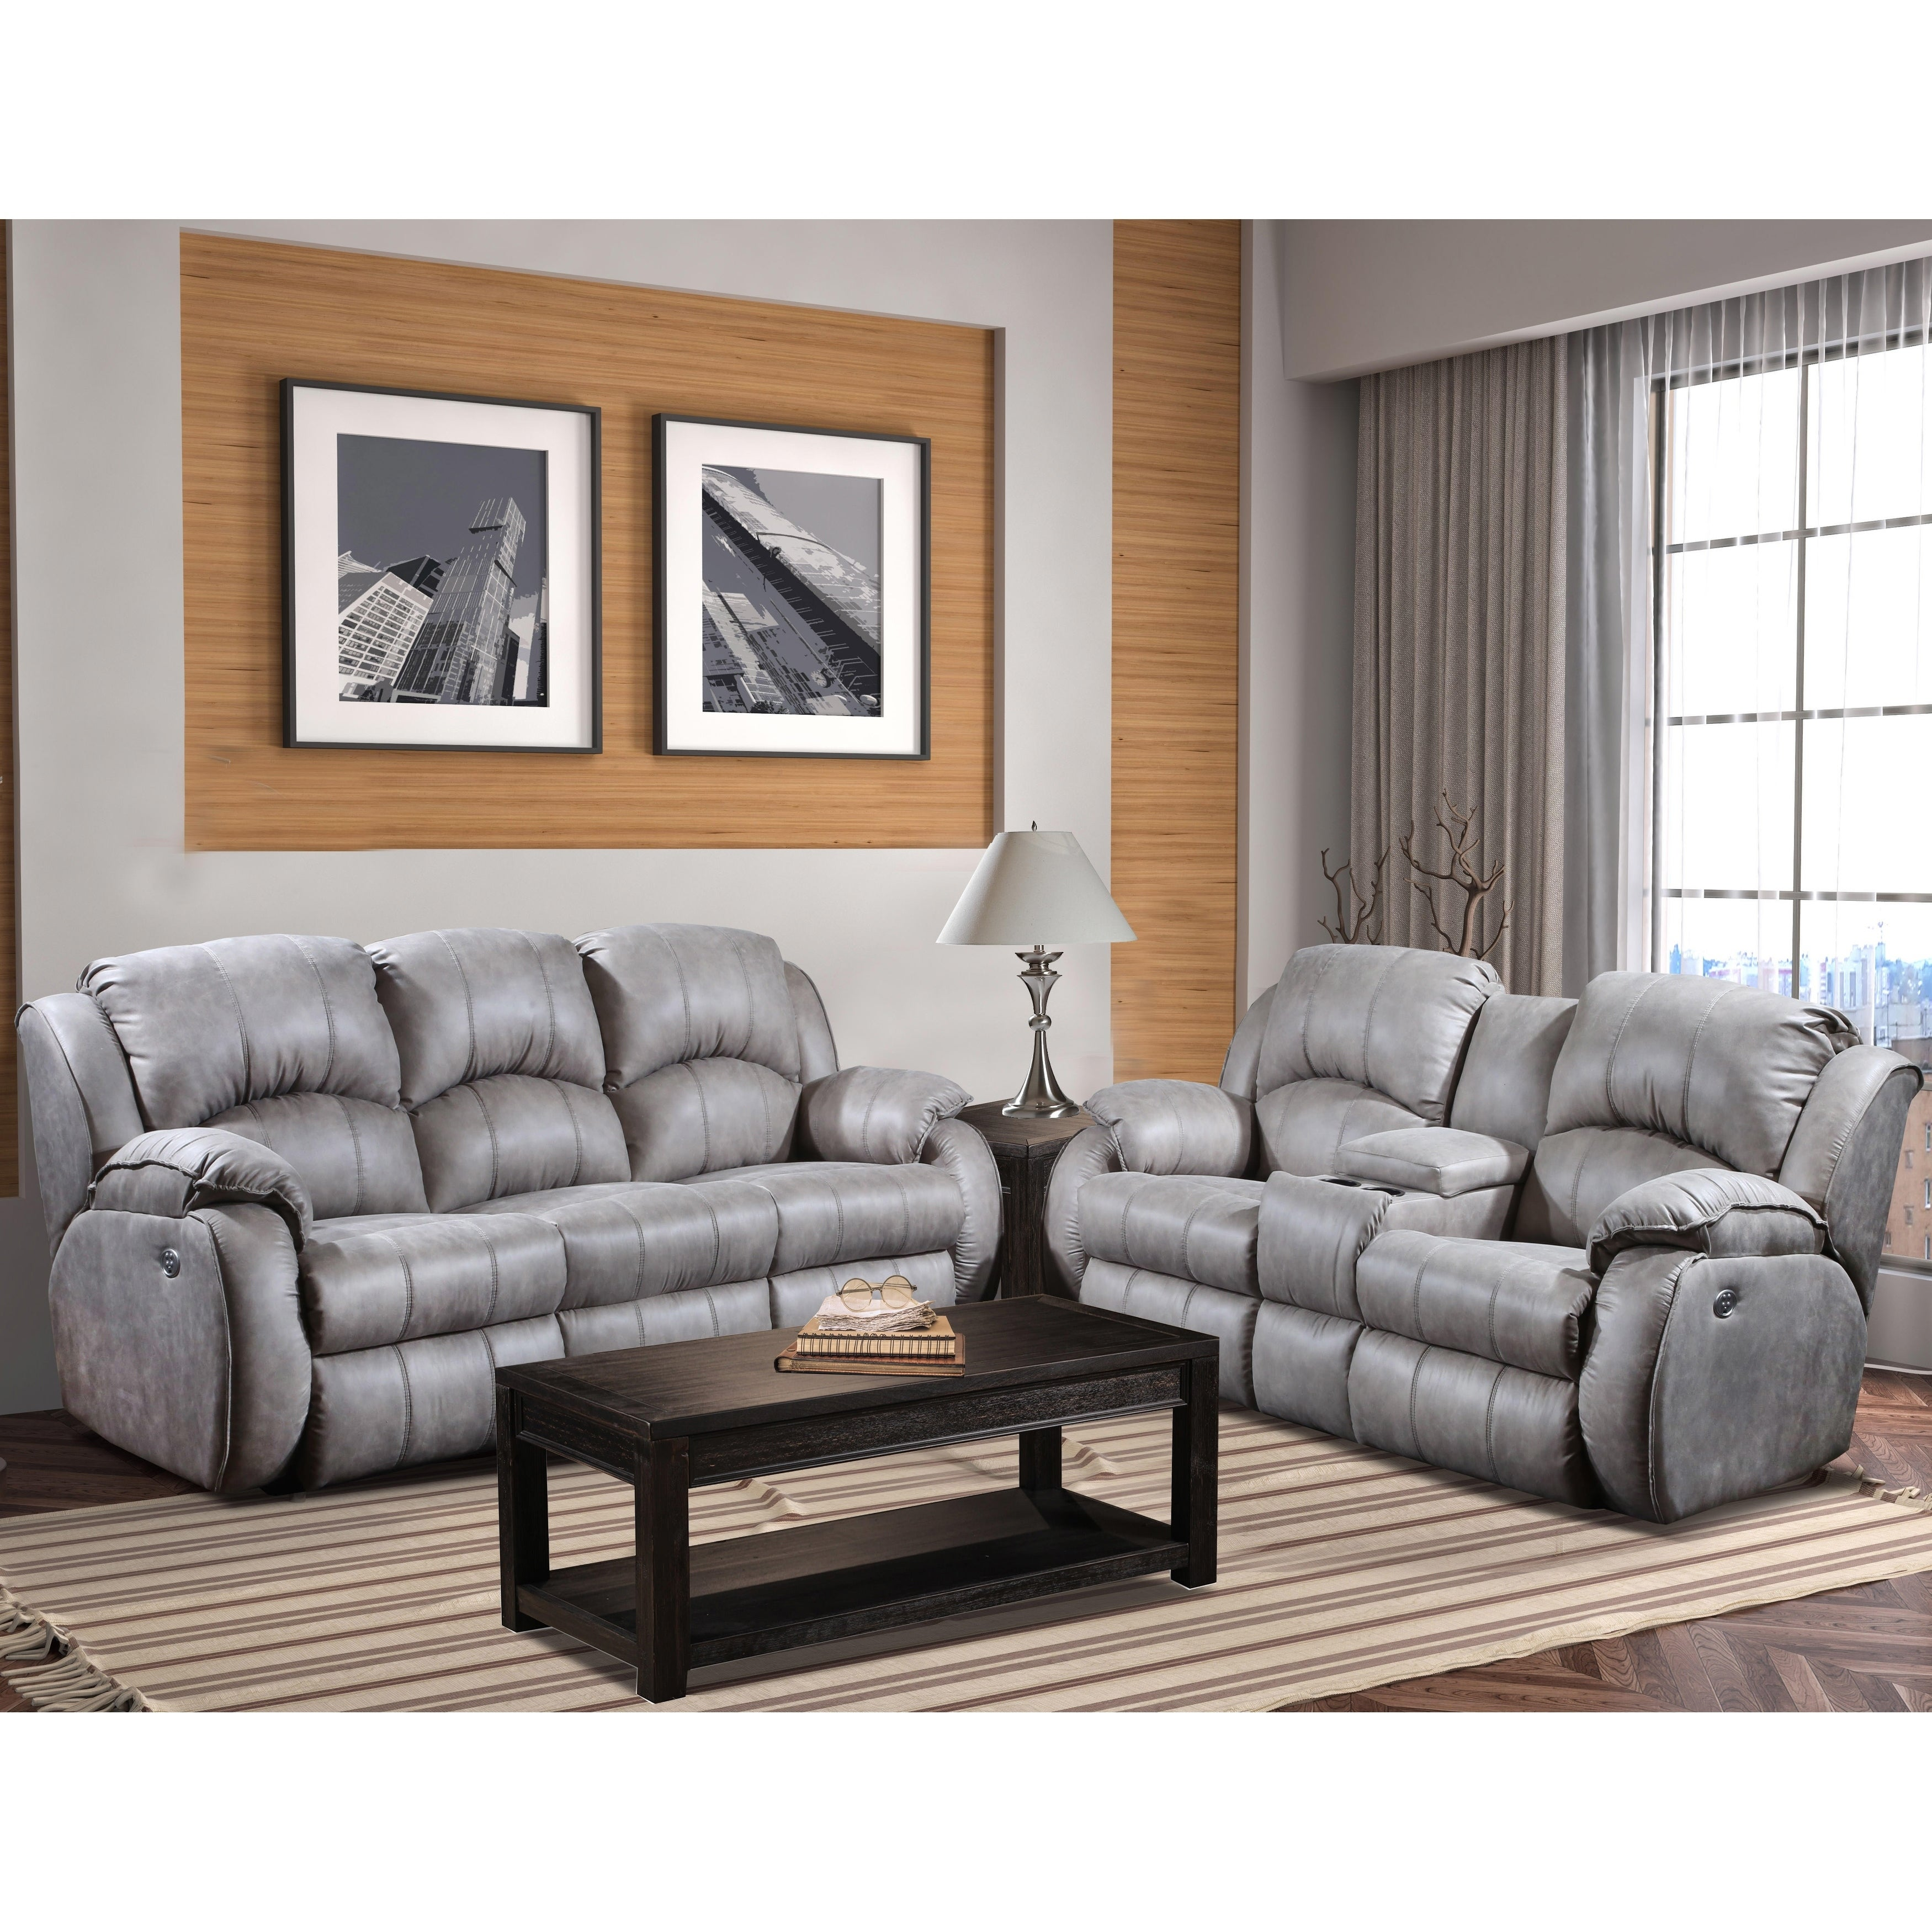 Amazing Southern Motions Cagney Power Headrest Double Reclining Sofa Download Free Architecture Designs Scobabritishbridgeorg